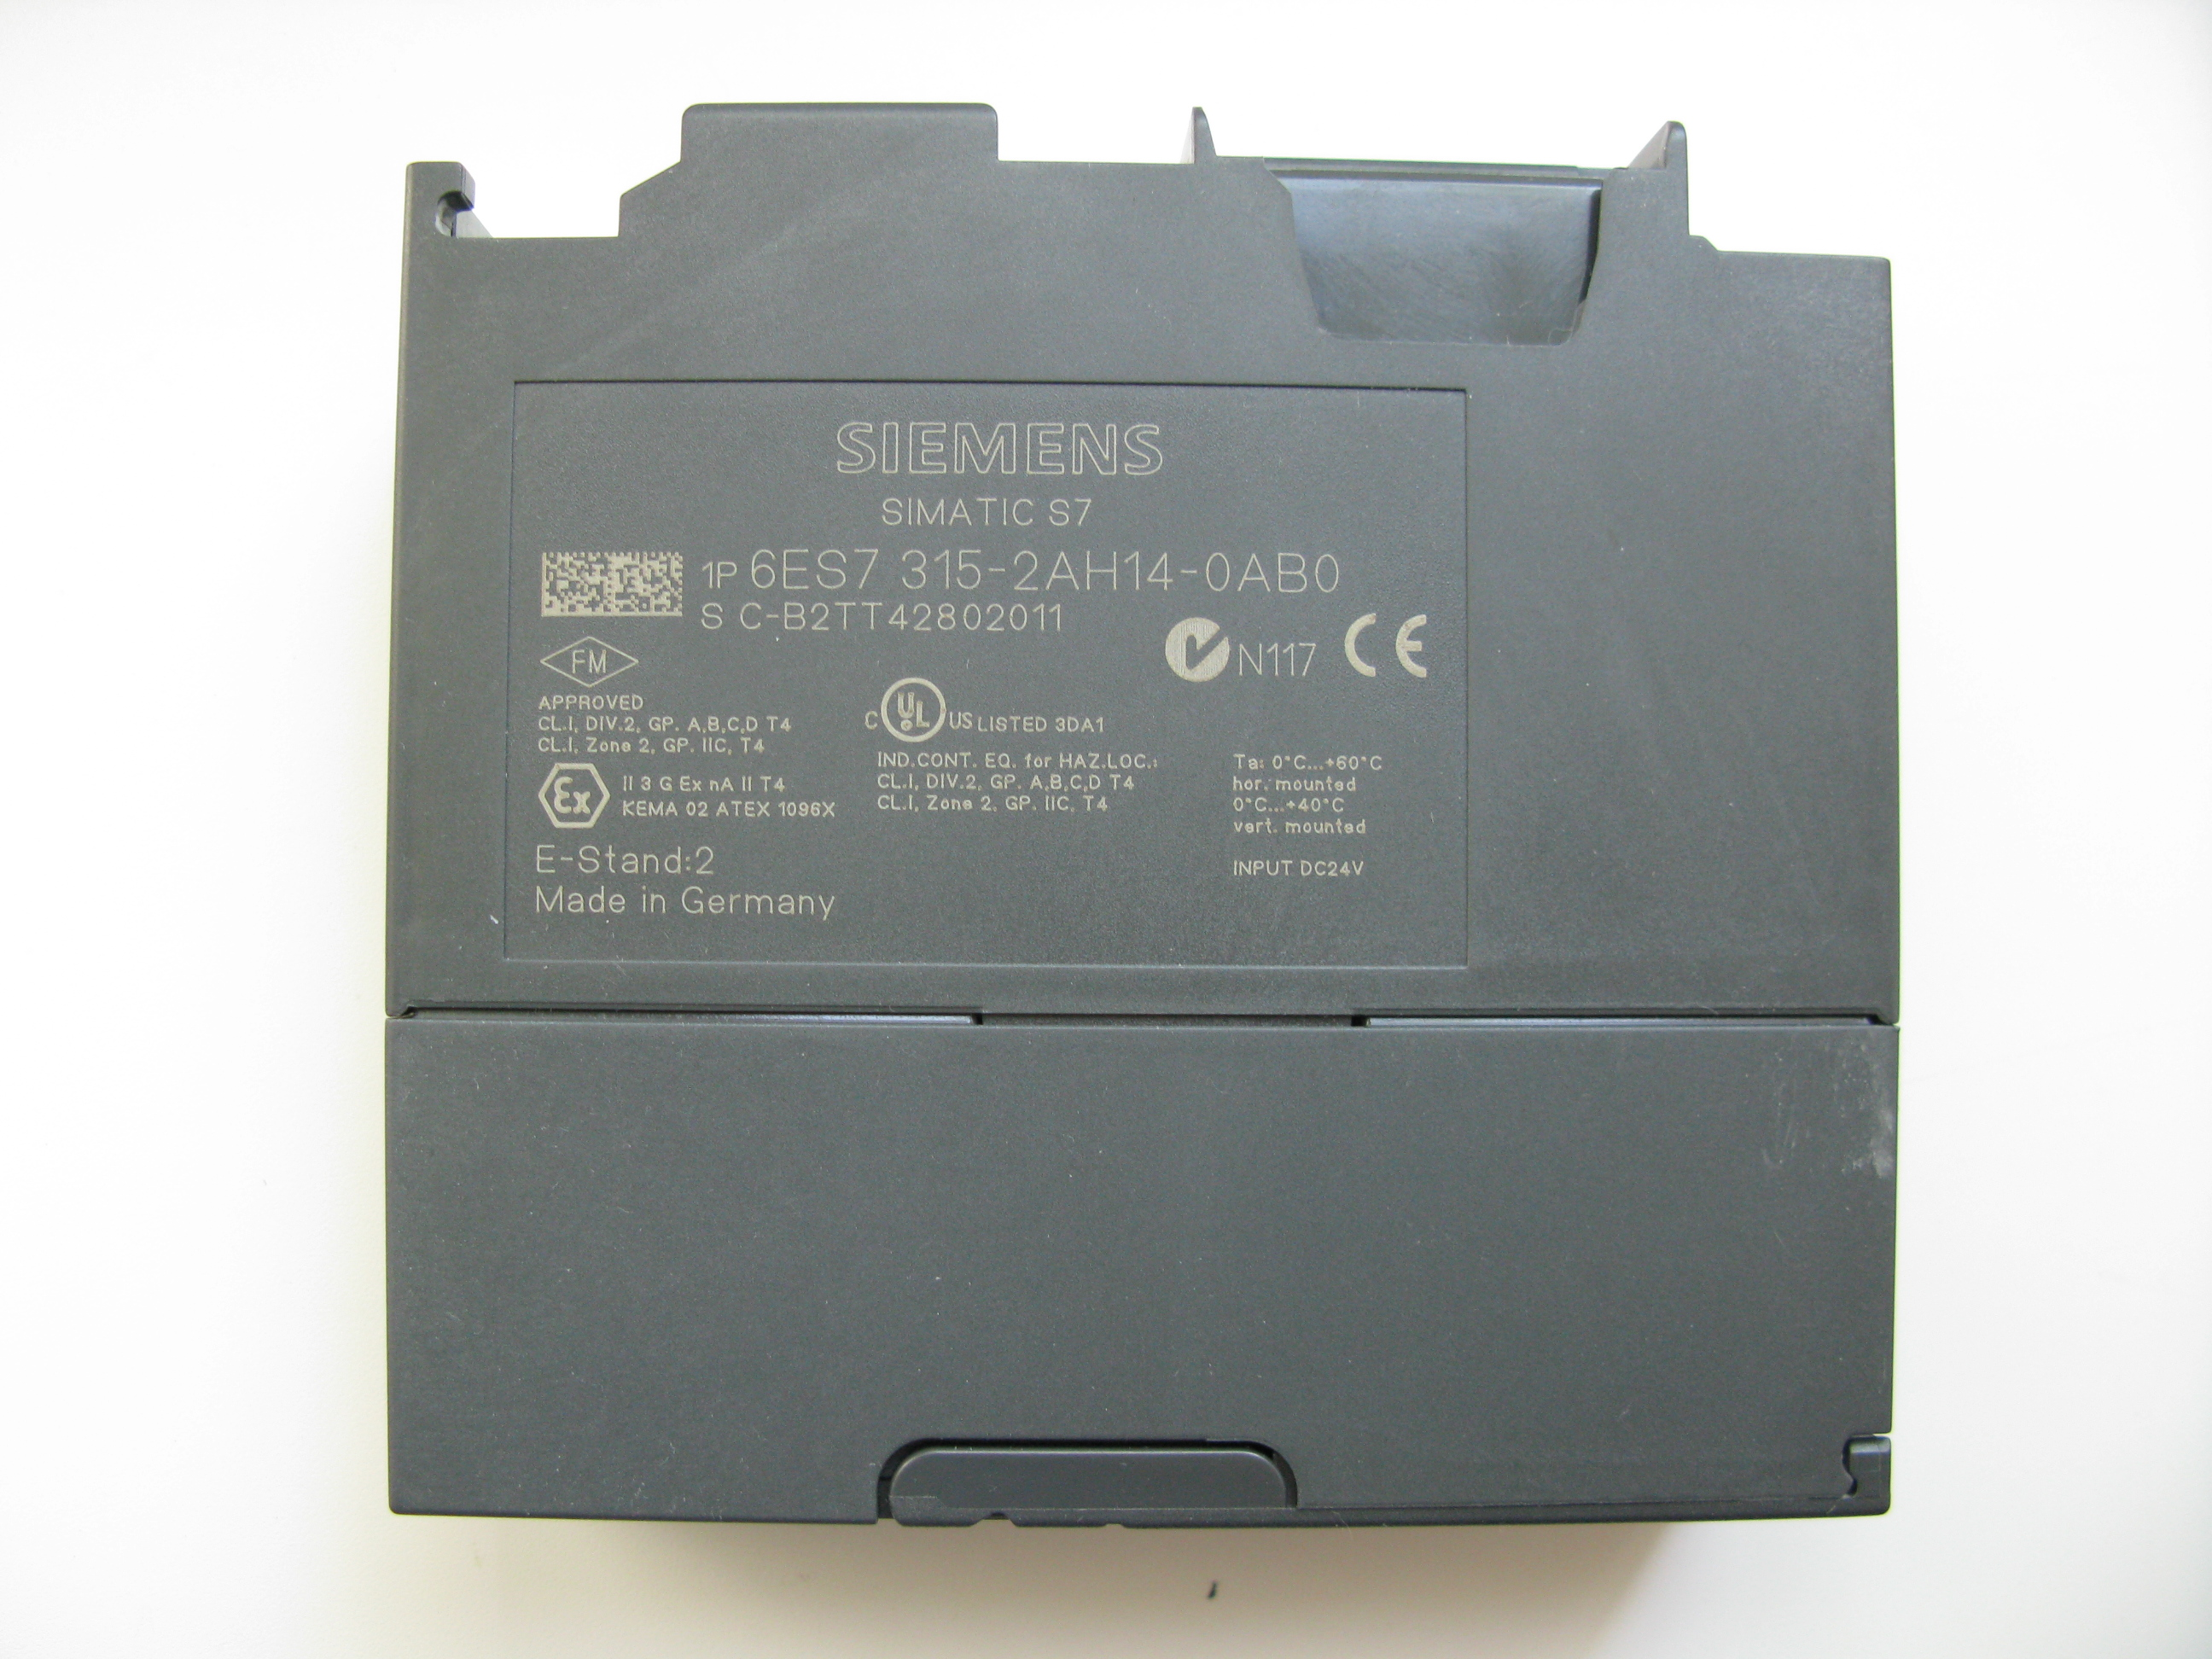 Siemens cpu 315-2dp manual